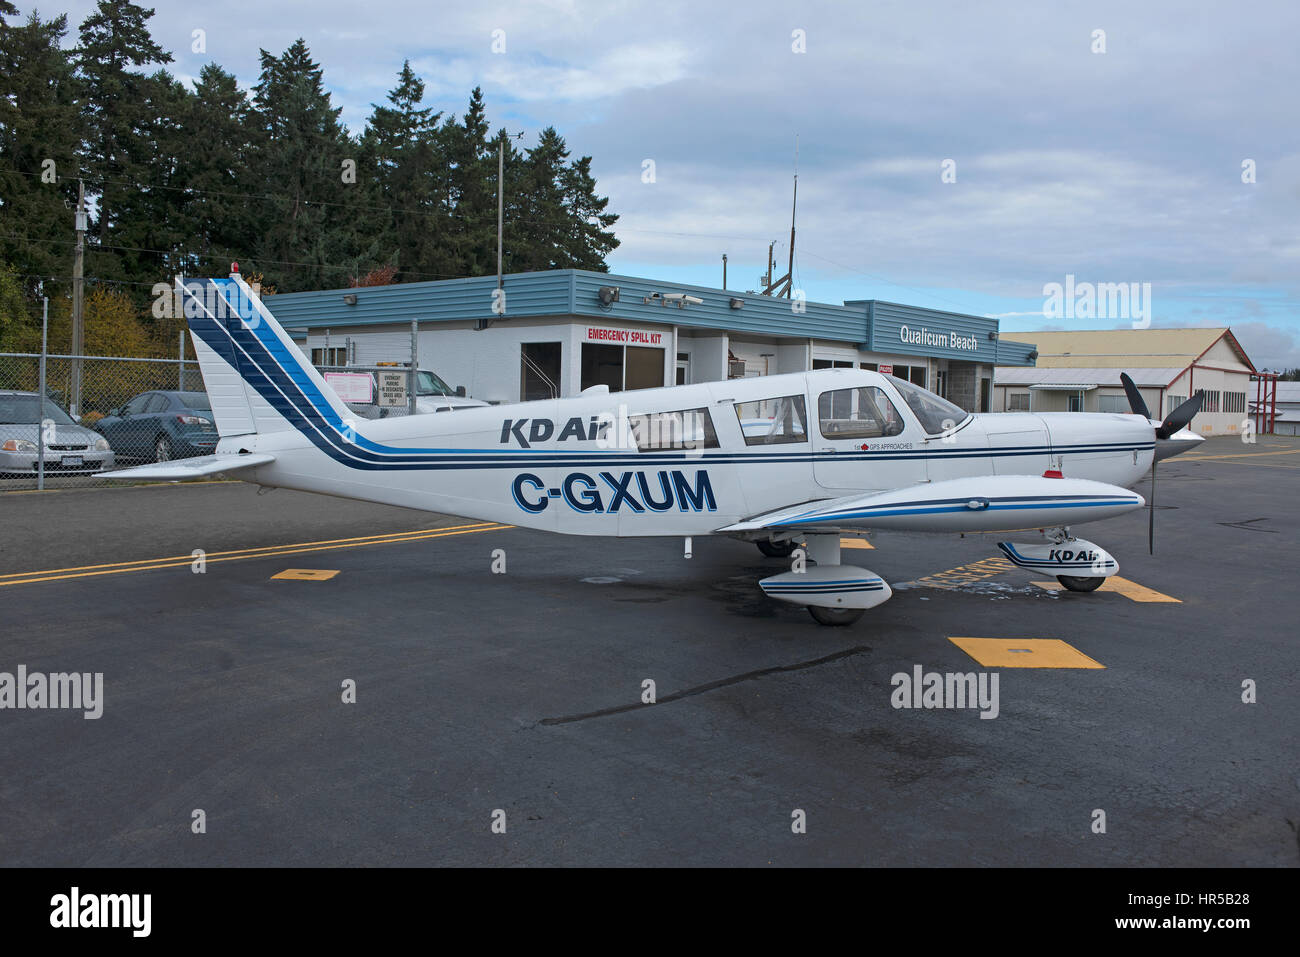 KD Air, Piper-PA-32-301 Air Taxi (C-GXUM) at Qualicum Beach Airport on Vancouver Island, British Columbia. Canada. - Stock Image